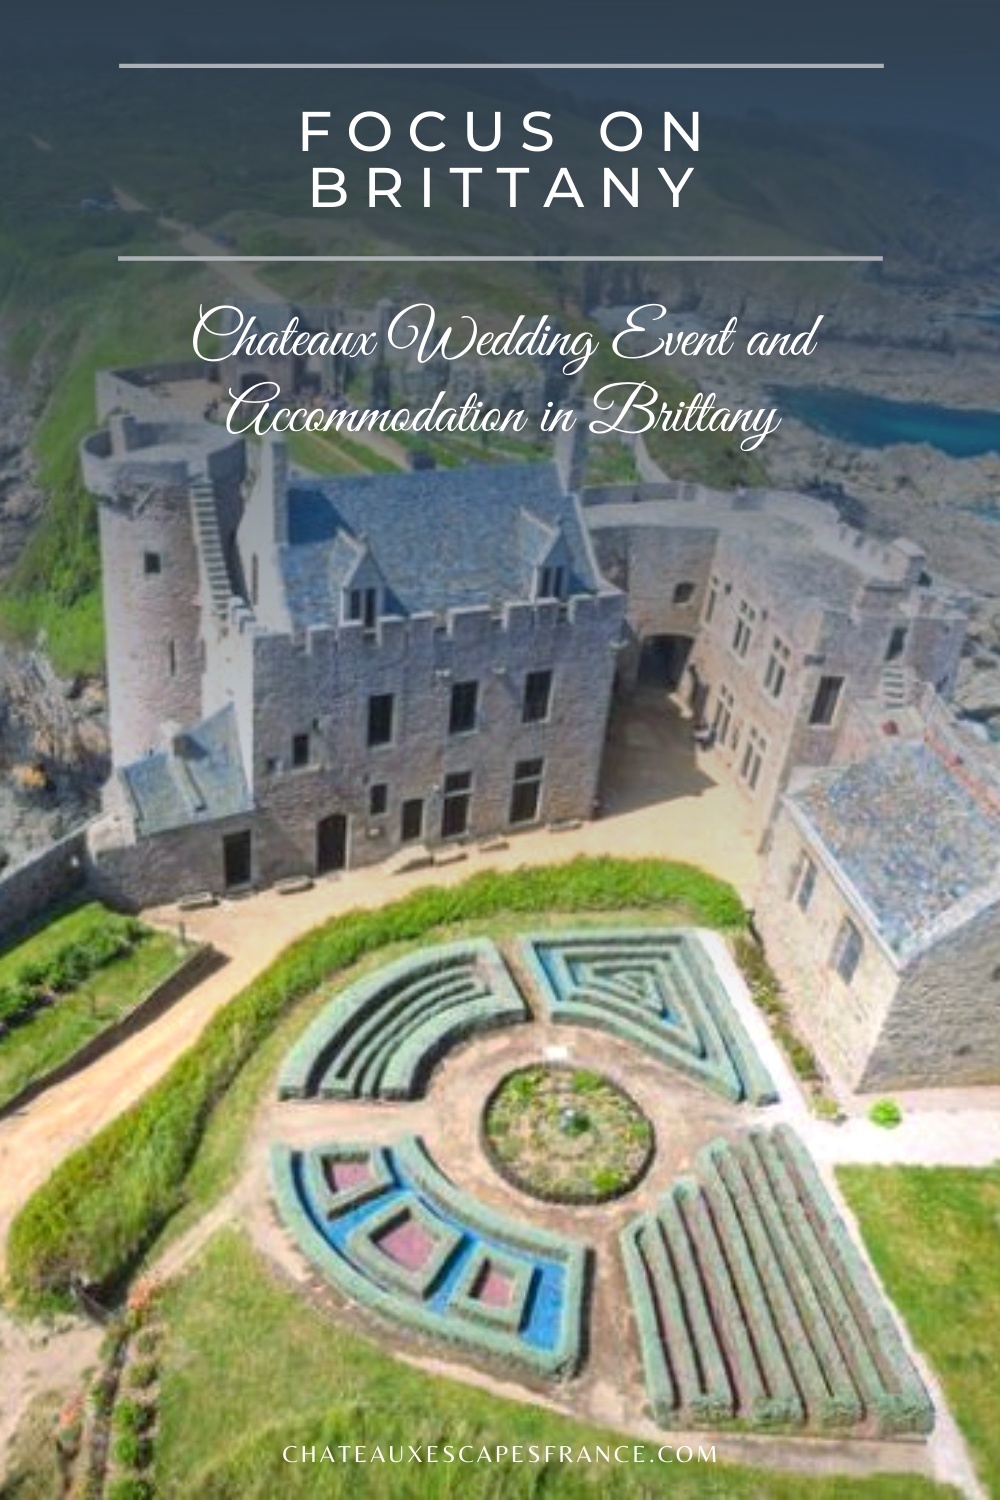 Brittany Conjures Up Images In Your Mind Of Wild Coastline Similar To Parts Of Cornwall And If This Is The Landscape Regions Of France Brittany Ferries Chateau